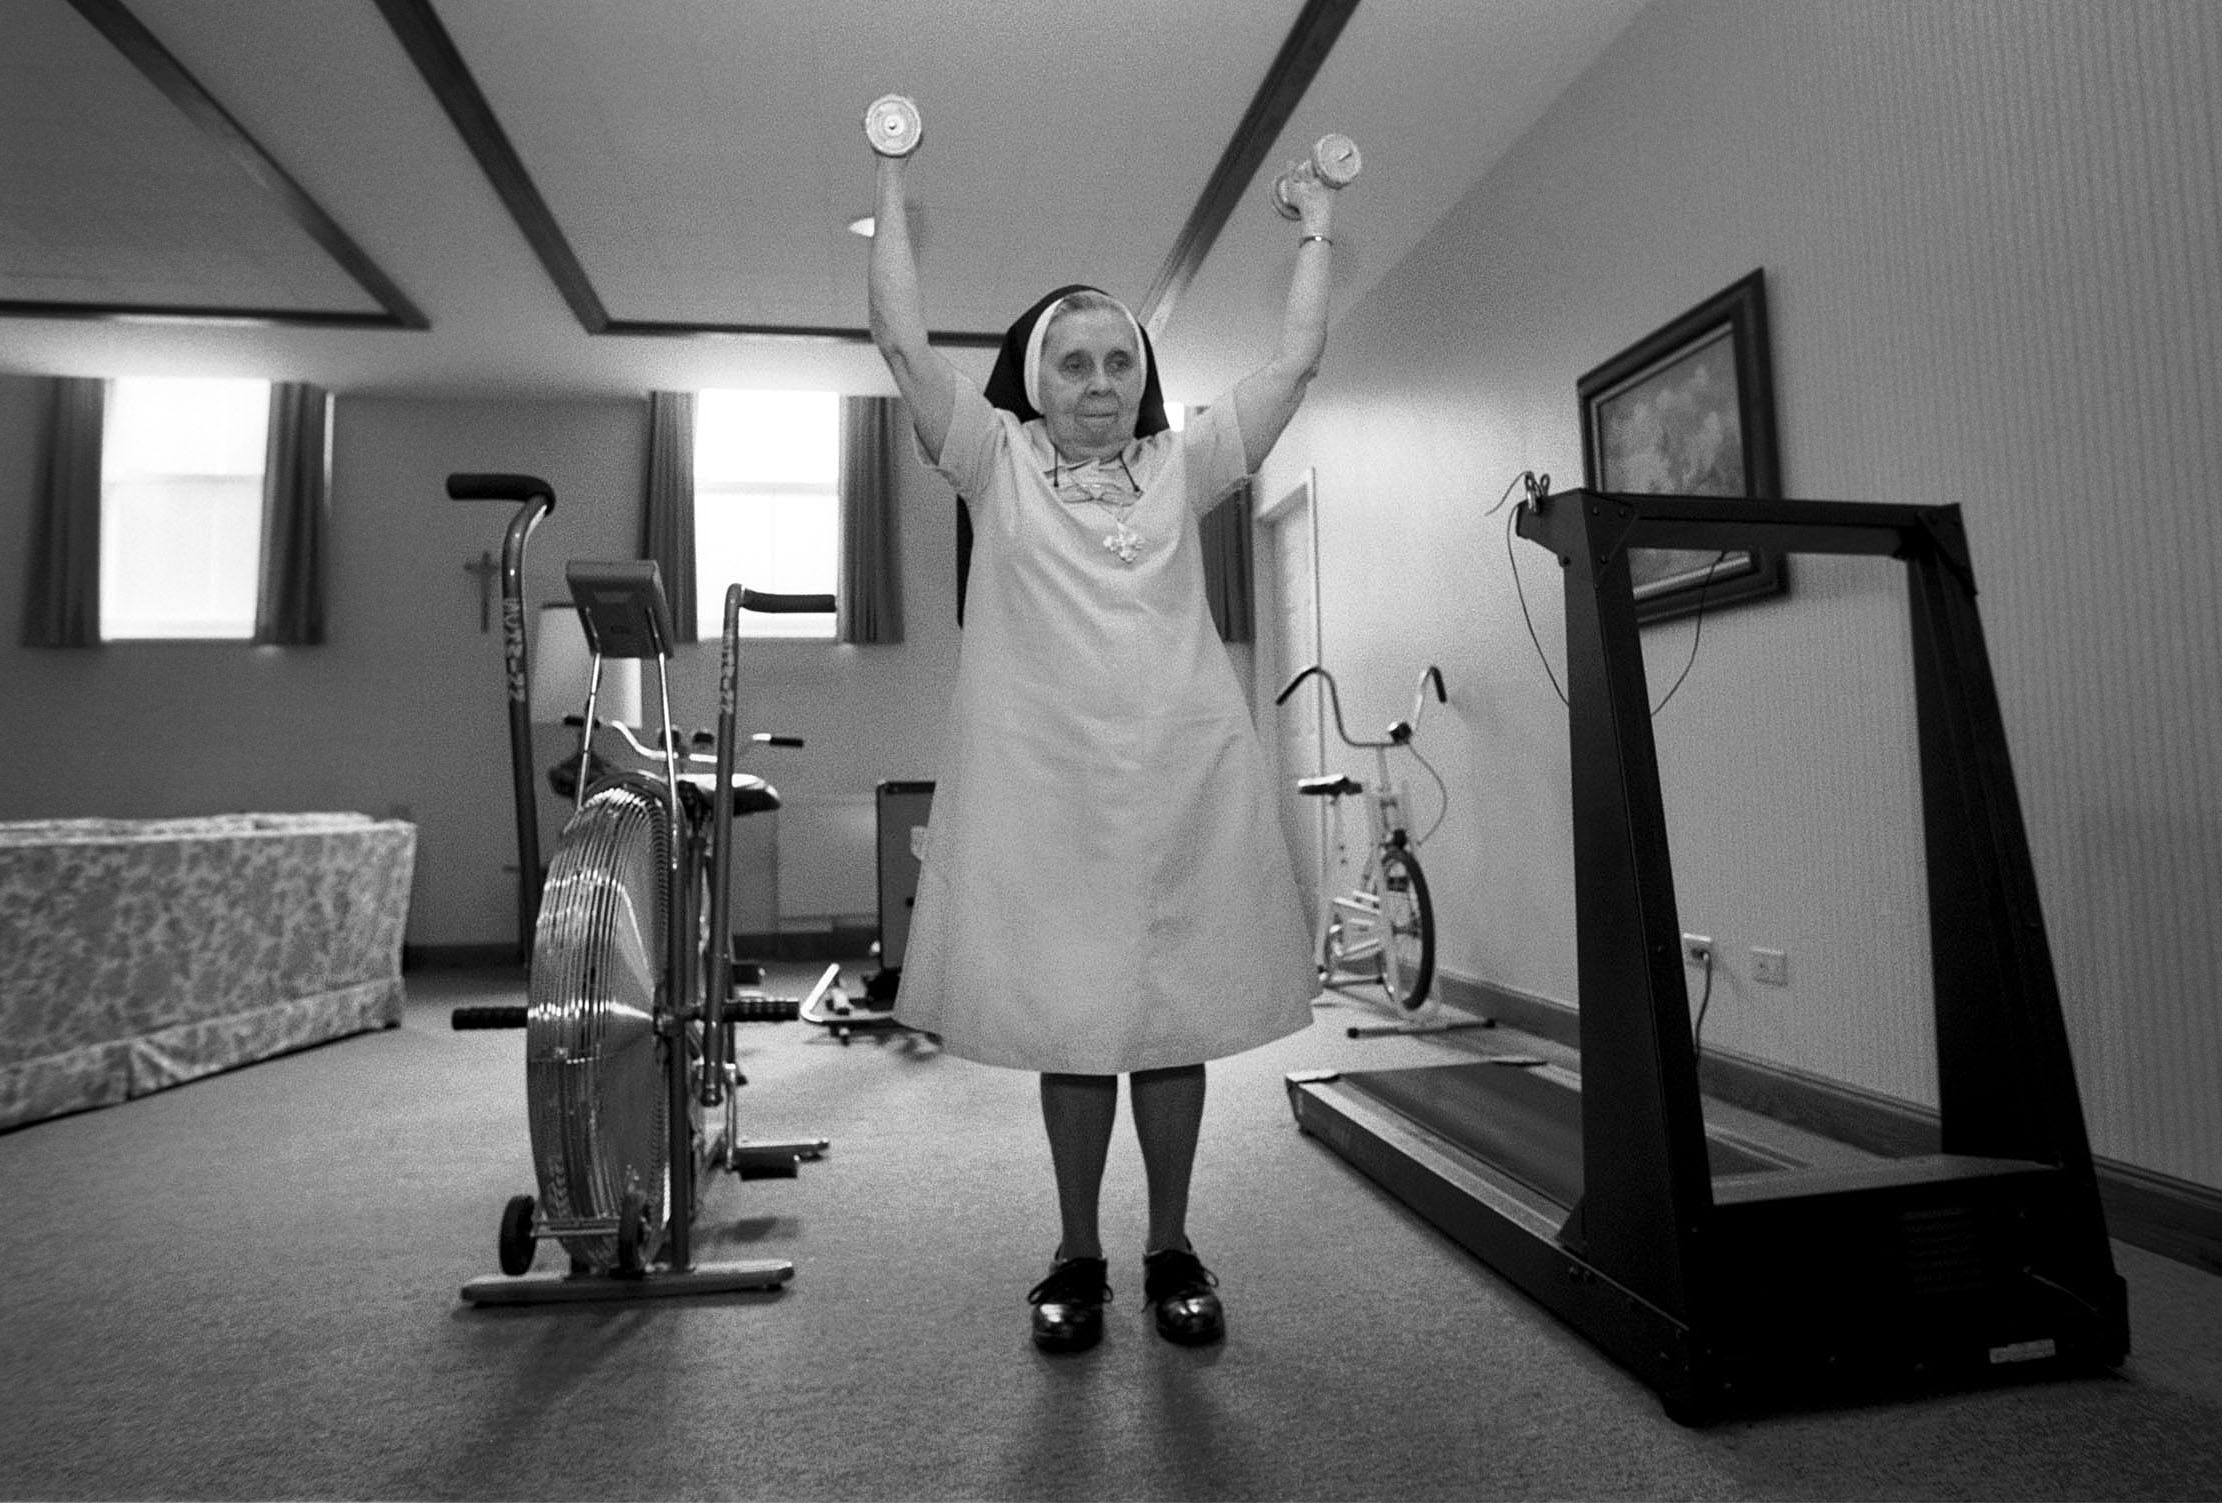 nuns_weightlifting_final.jpg